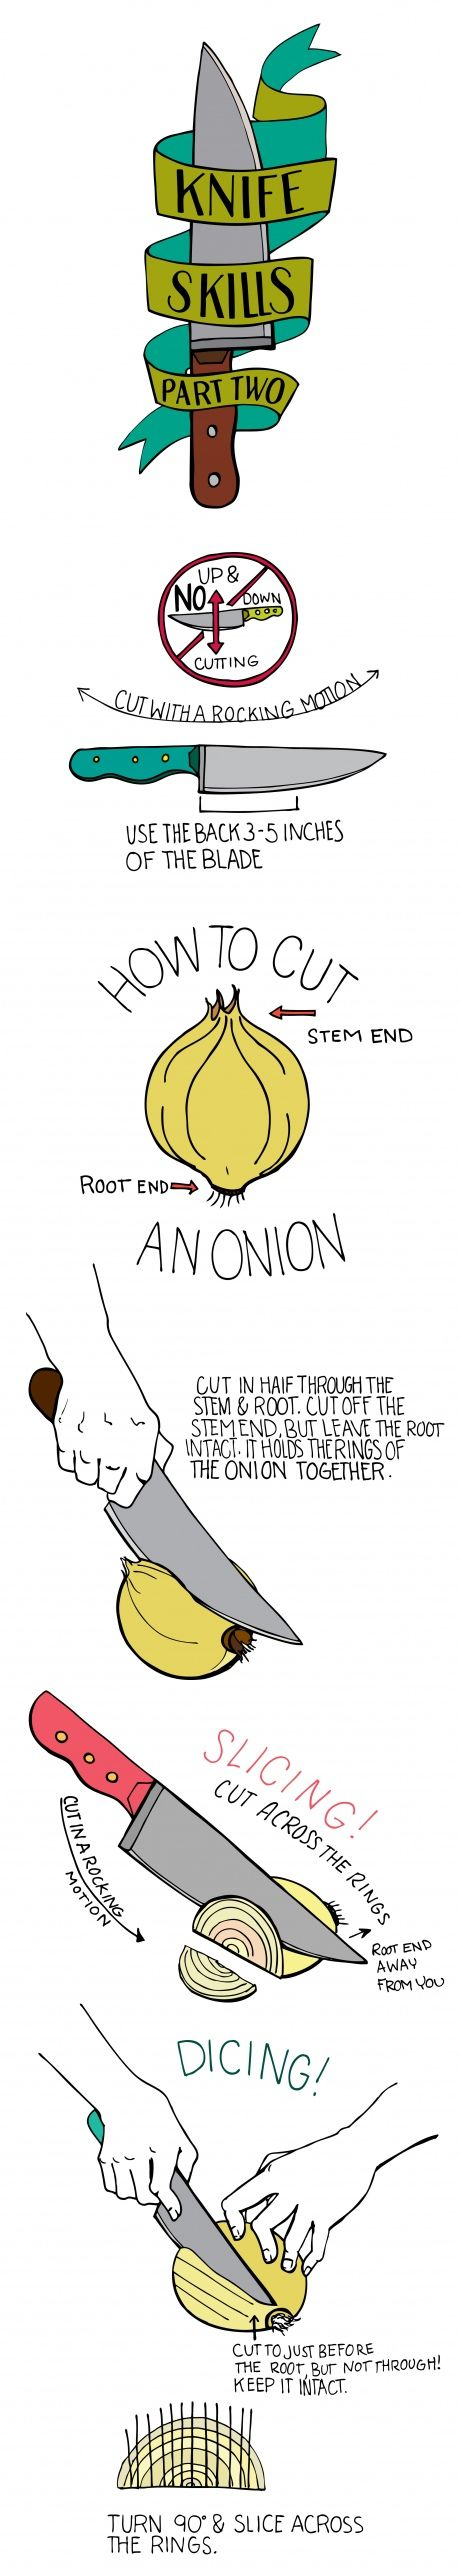 cute way to show how to cut an onion